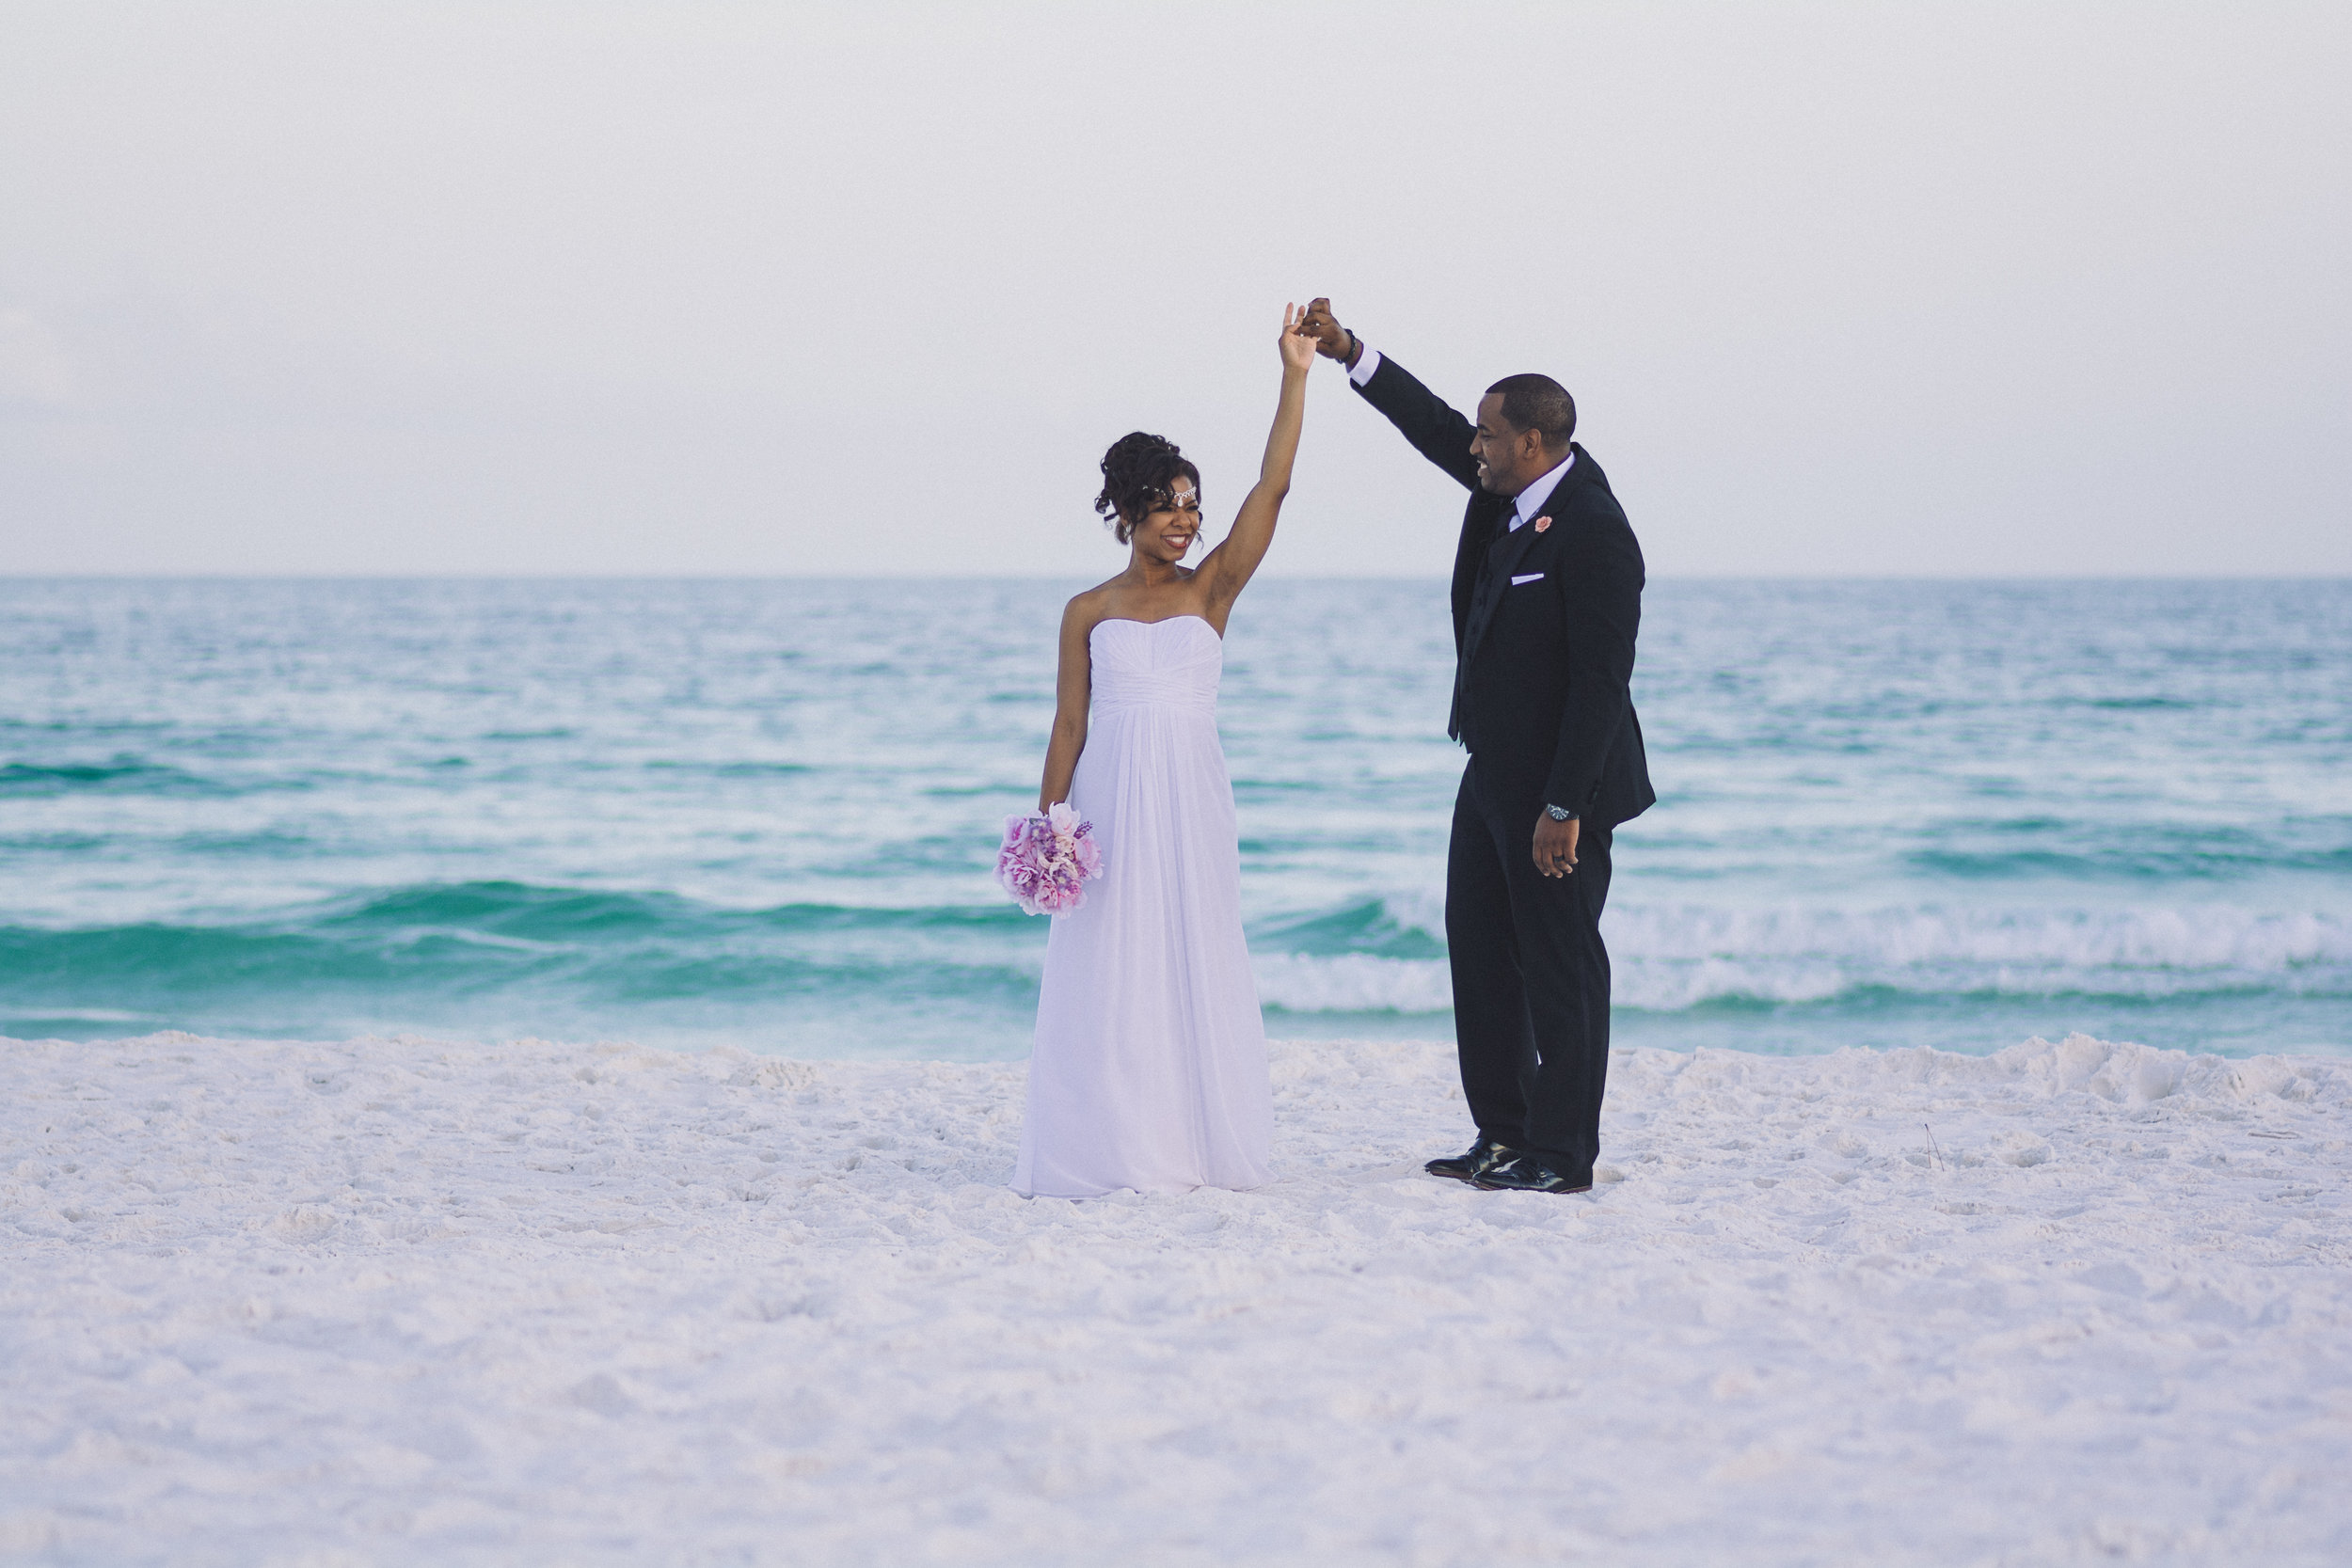 Dylan-Carney-Photography-Wedding-Destin-Beach-Florida-57.jpg